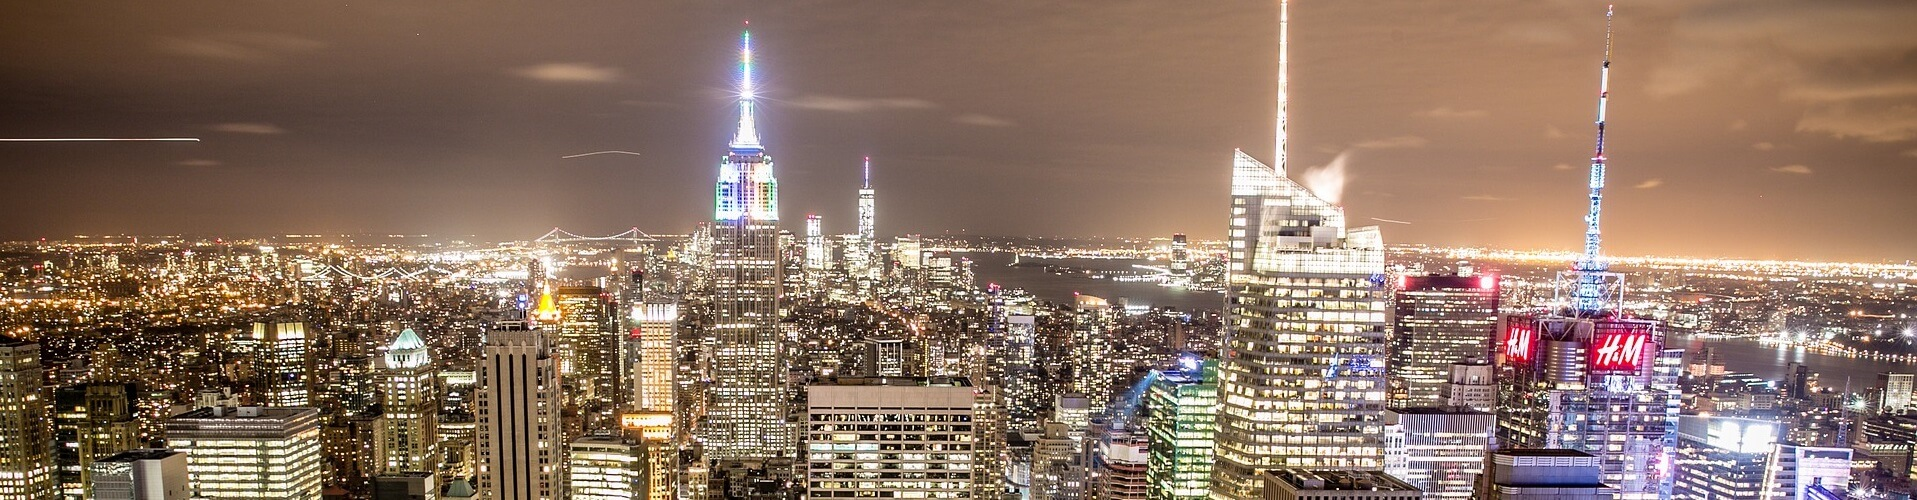 New york city awesome activities you can 39 t do anywhere else for What can you do in new york city